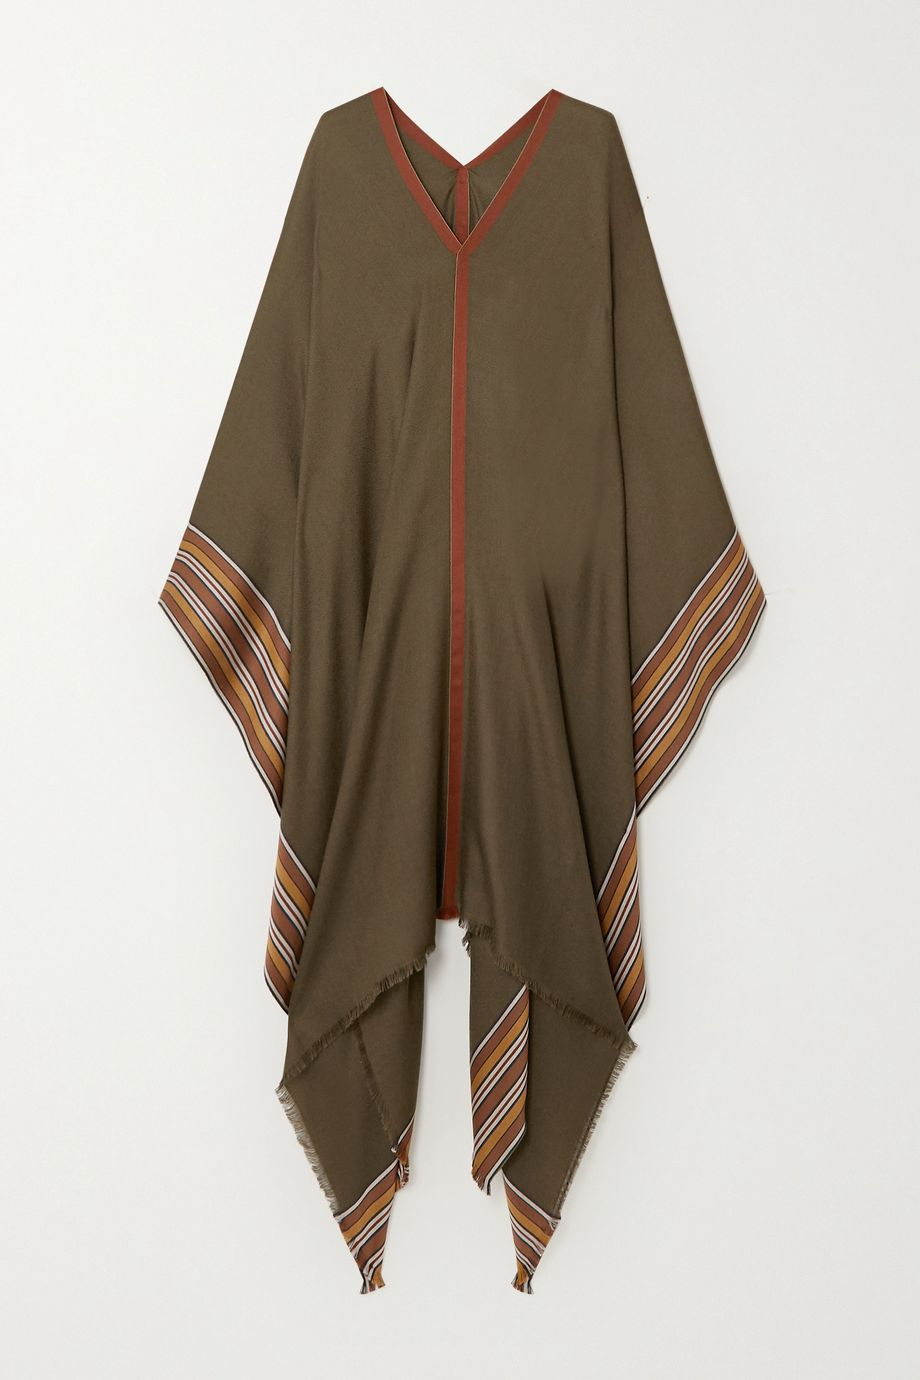 Loro Piana The Suitcase Stripe silk and cashmere-blend poncho